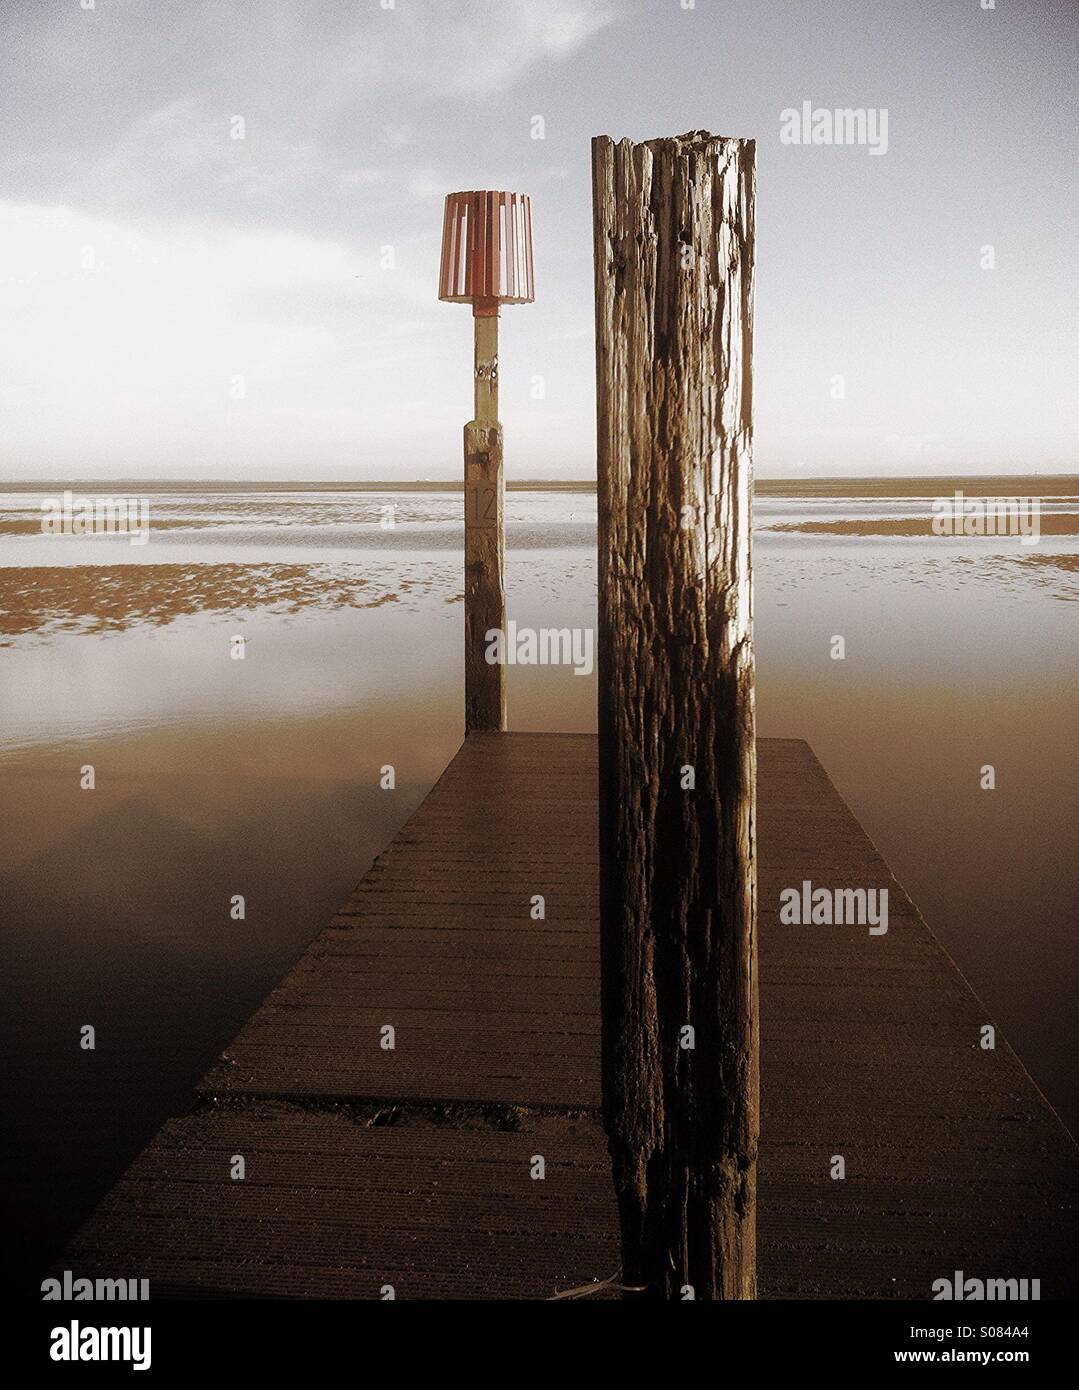 Boardwalk - Stock Image